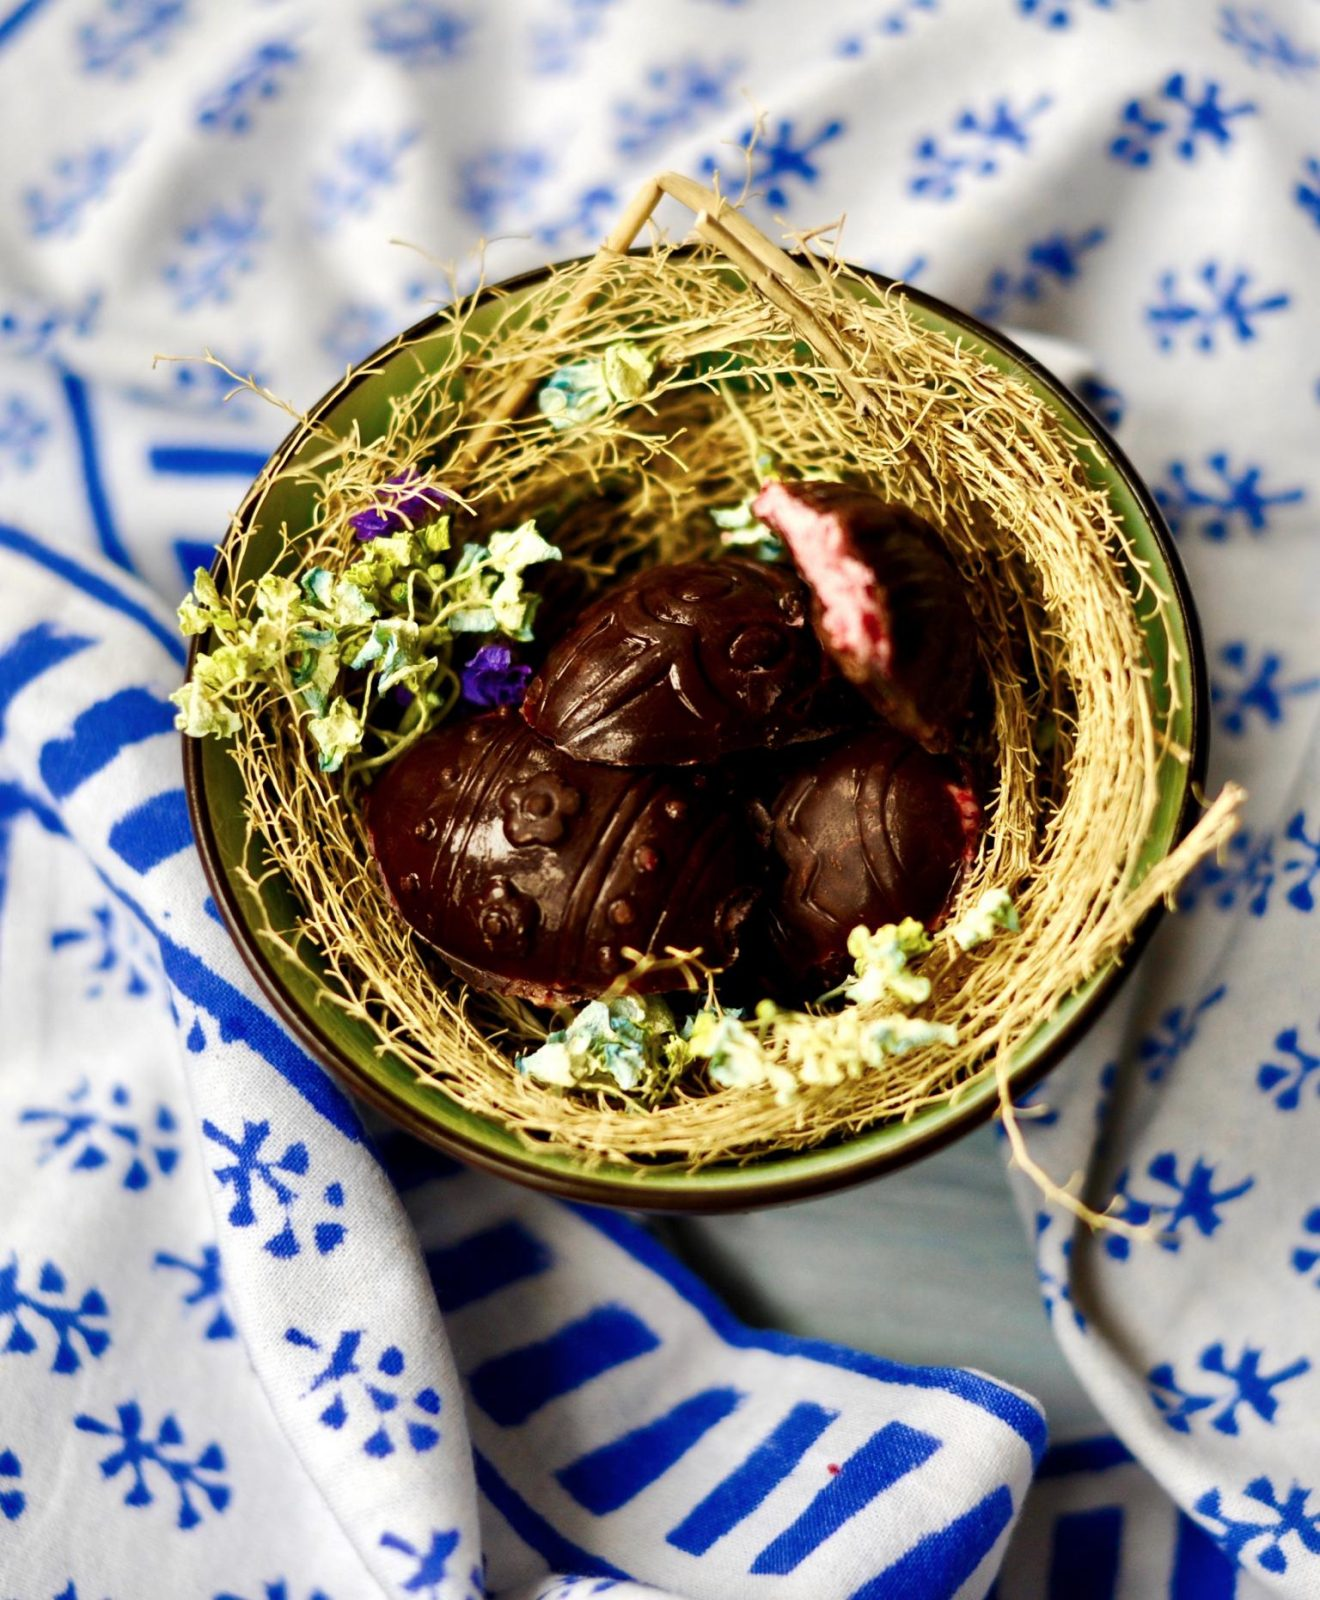 How to Make Chocolate Raspberry Easter Eggs (Vegan, Gluten Free)